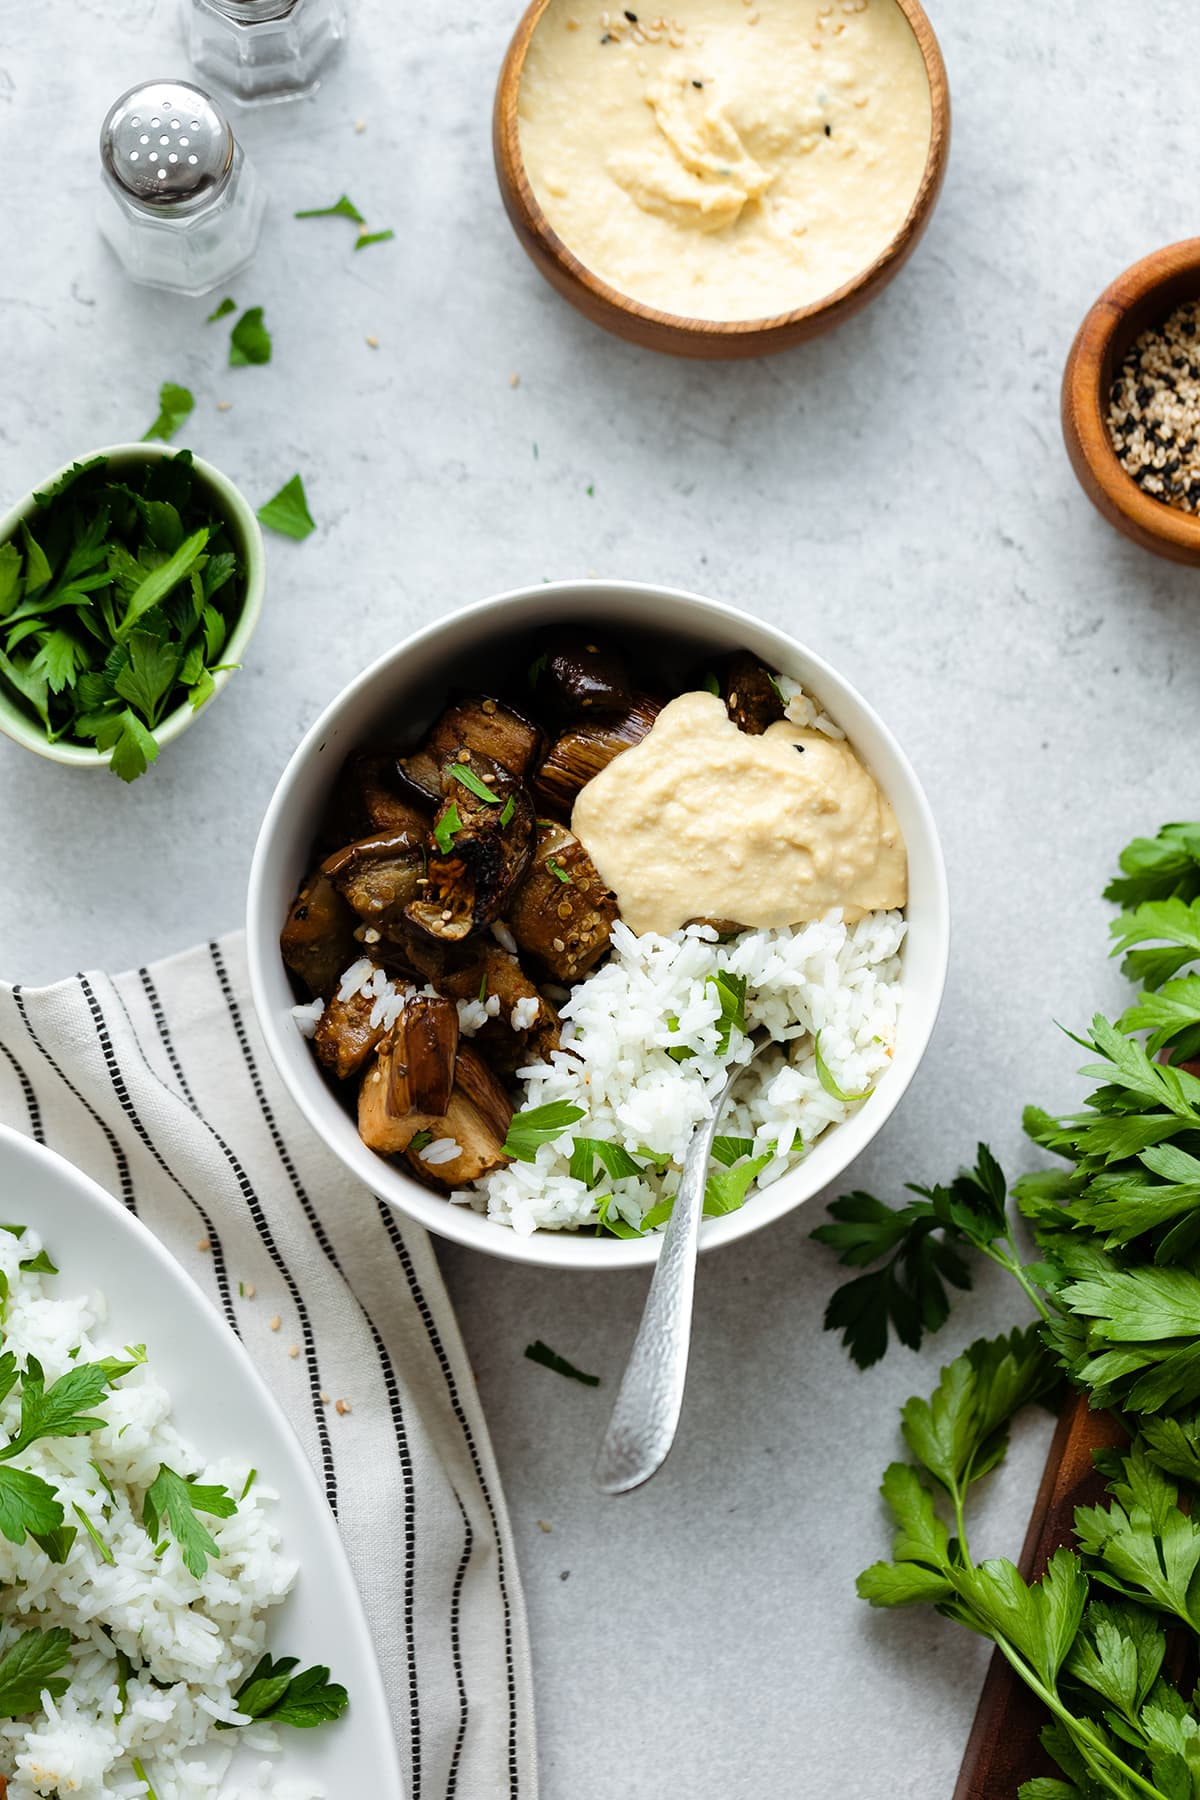 Spicy Garlic Miso Roasted Eggplant in a small bowl with white rice, parsley, and hummus. Grey background